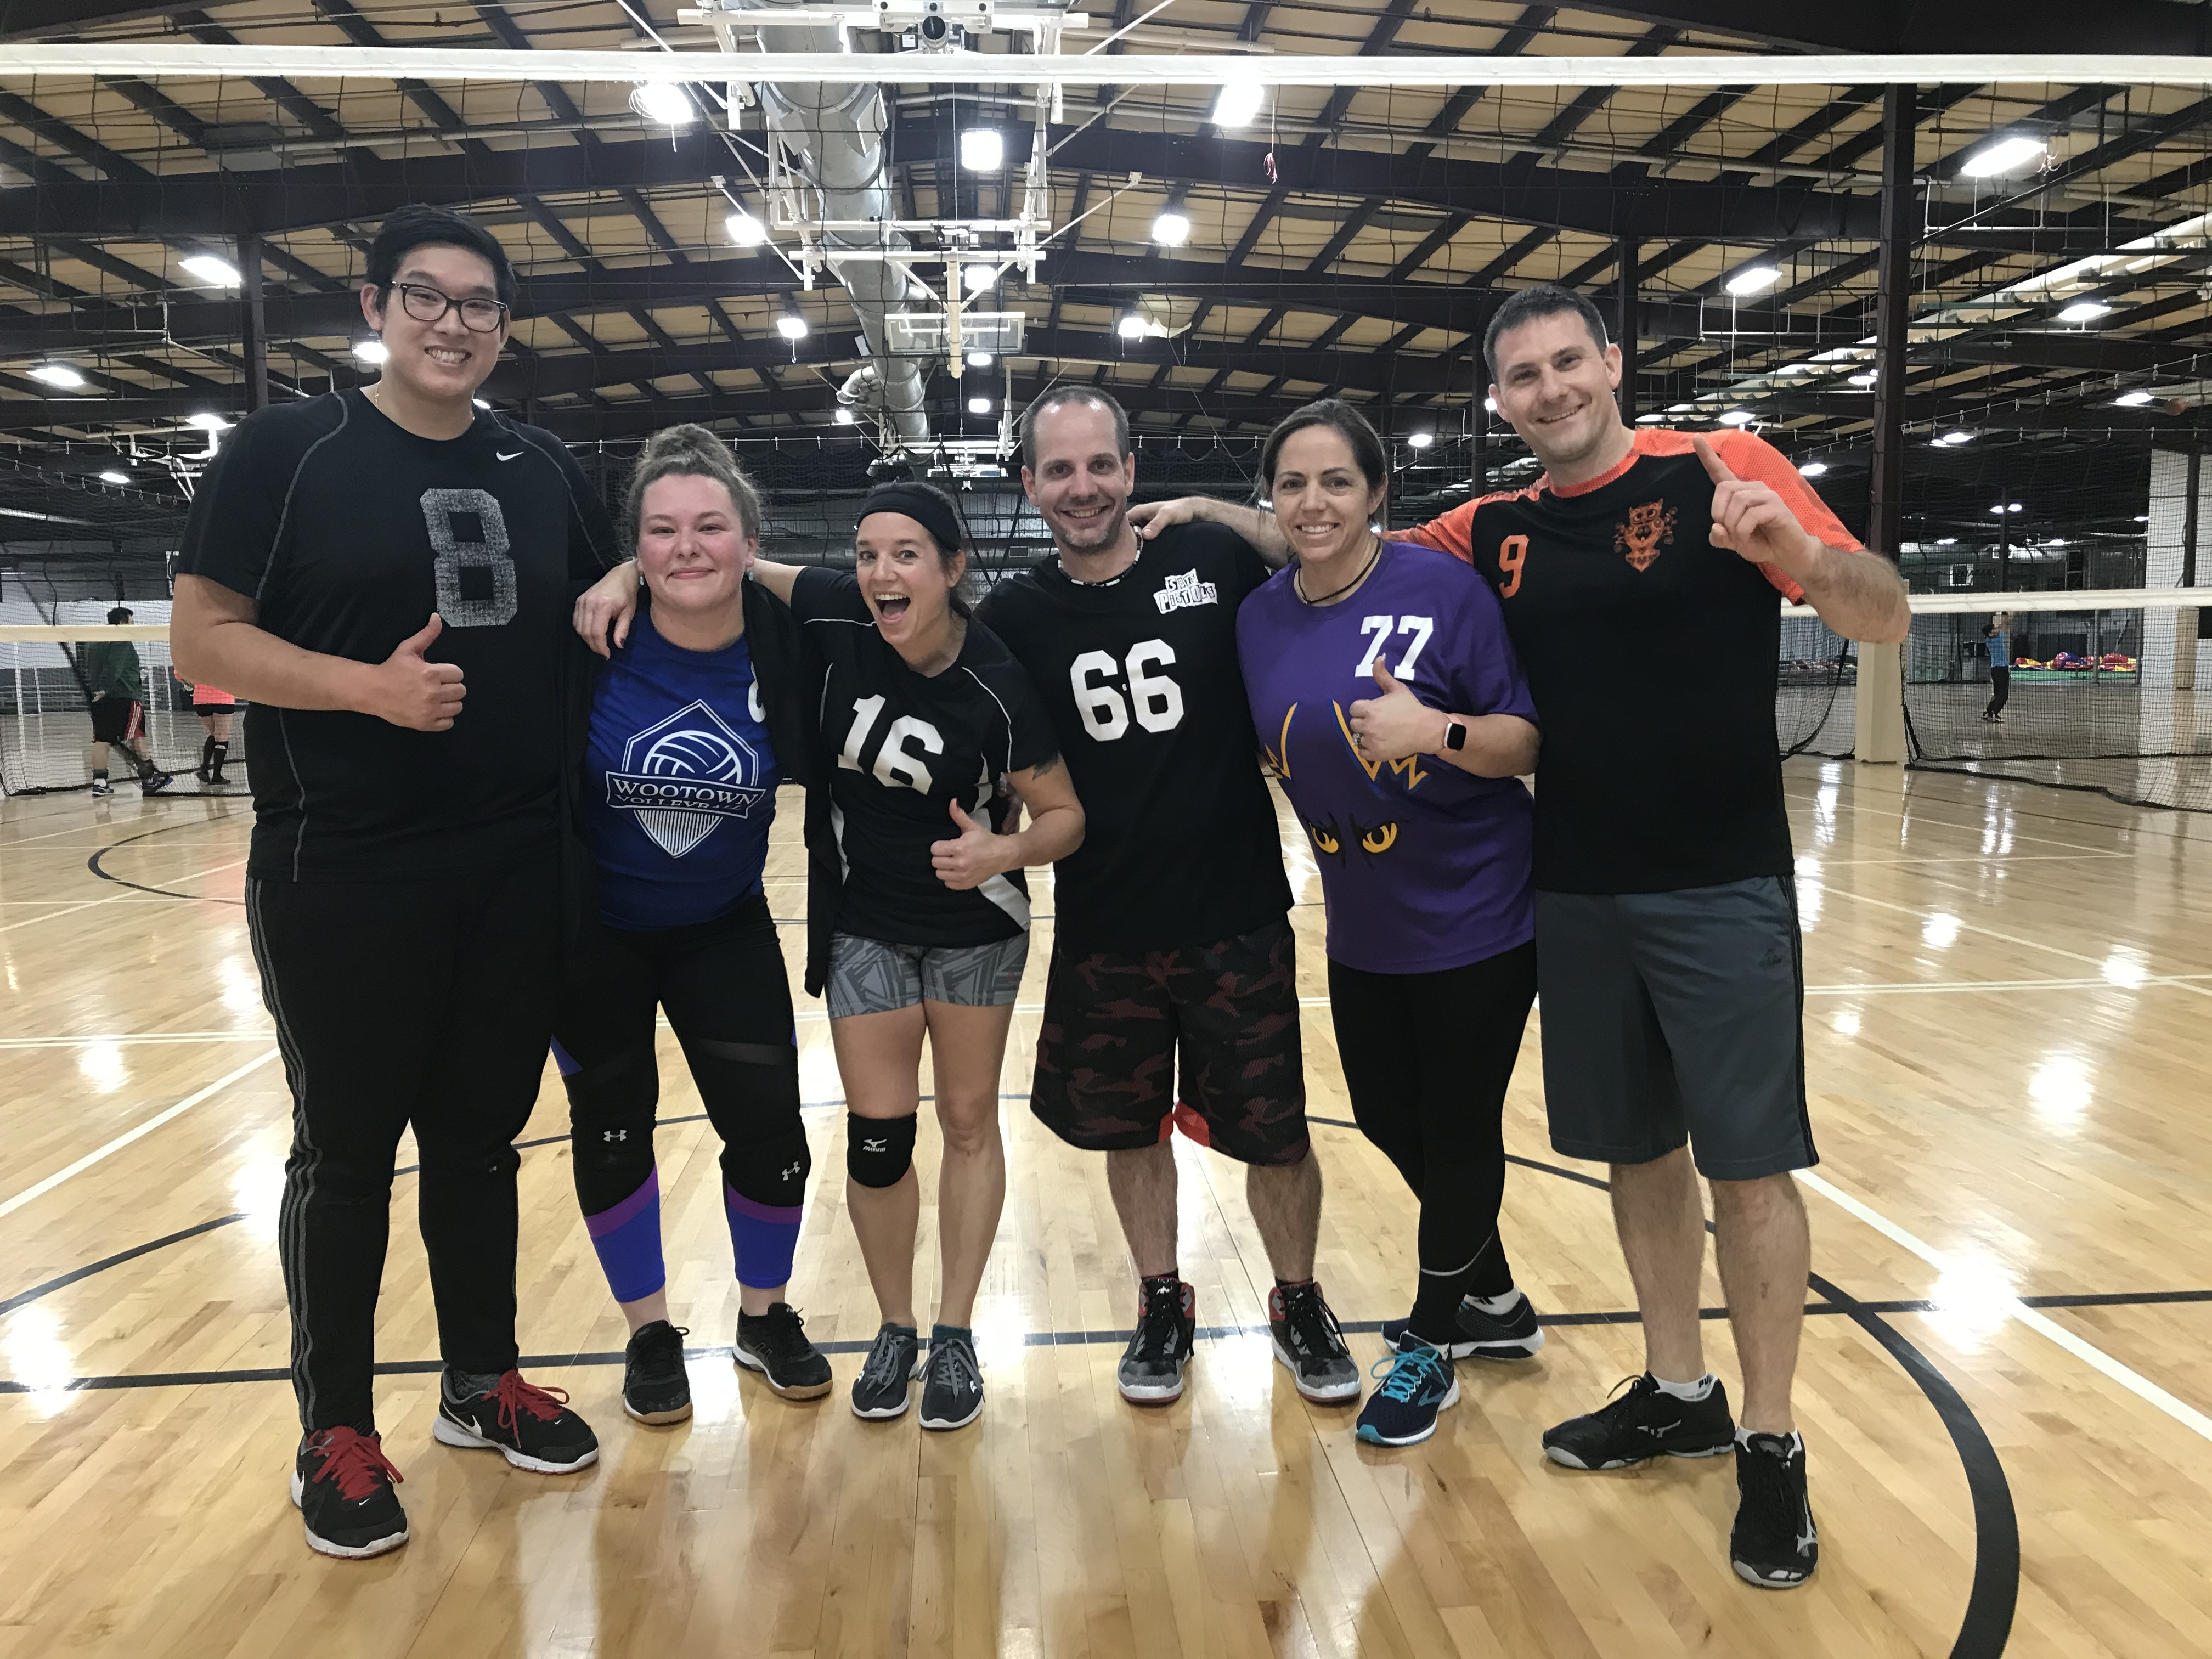 11/09/2019 RCO C- Champions - Volleyball Things